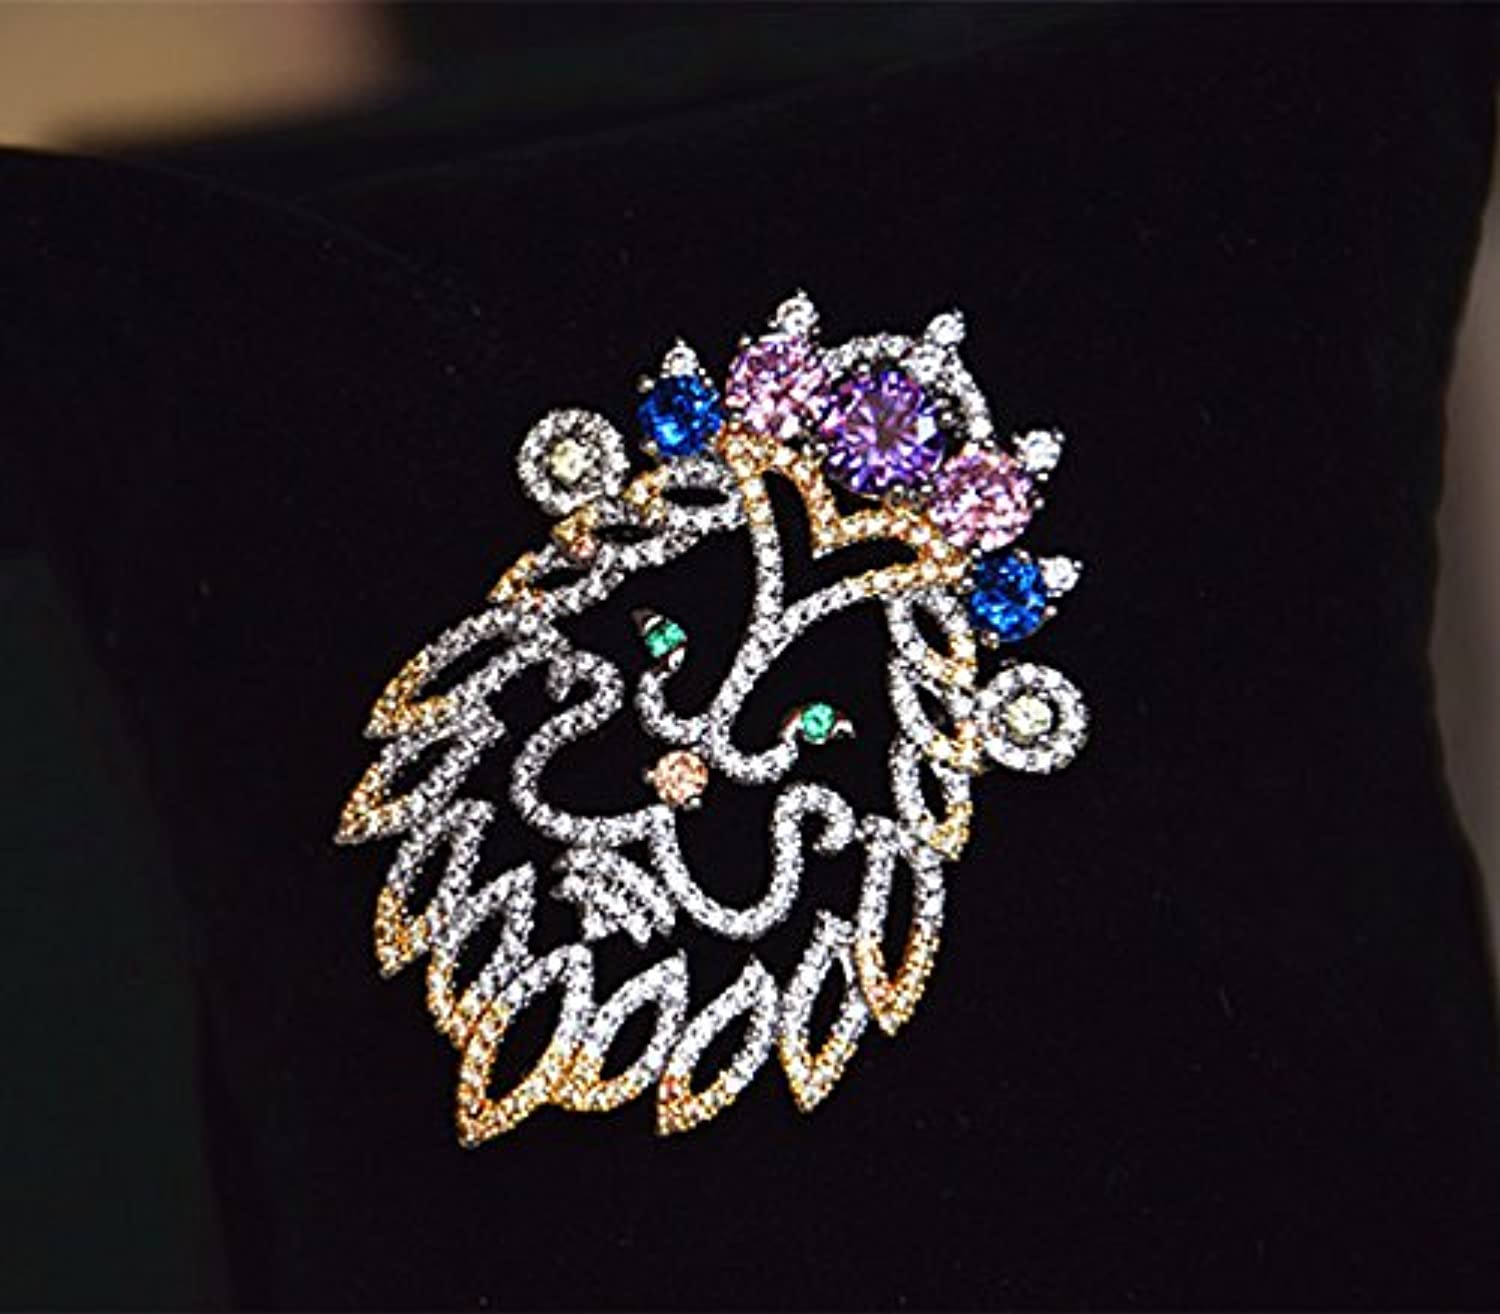 Palace Retro Luxury Micro Pave Zircon color Animal Brooch pin Badge pin Brooch pin Badge Clothing Accessories Gifts Gift